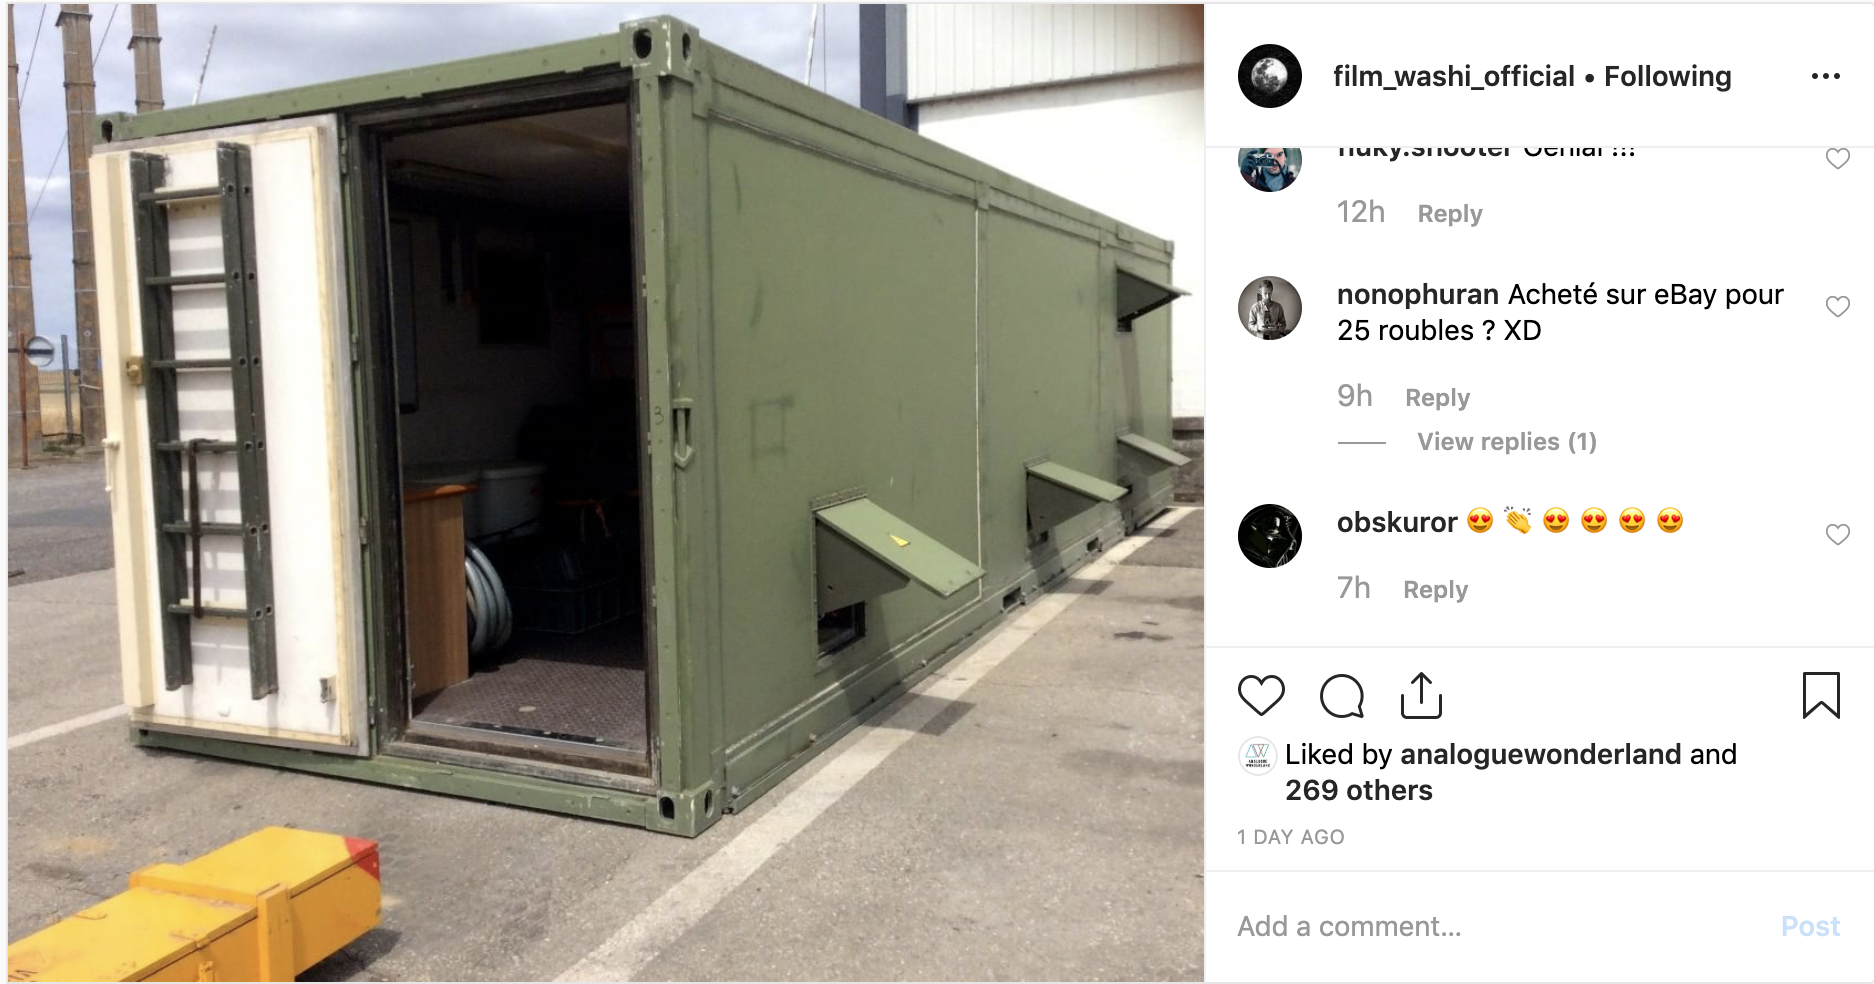 Photo of mobile darkroom (Pic: Film Washi/Instagram)